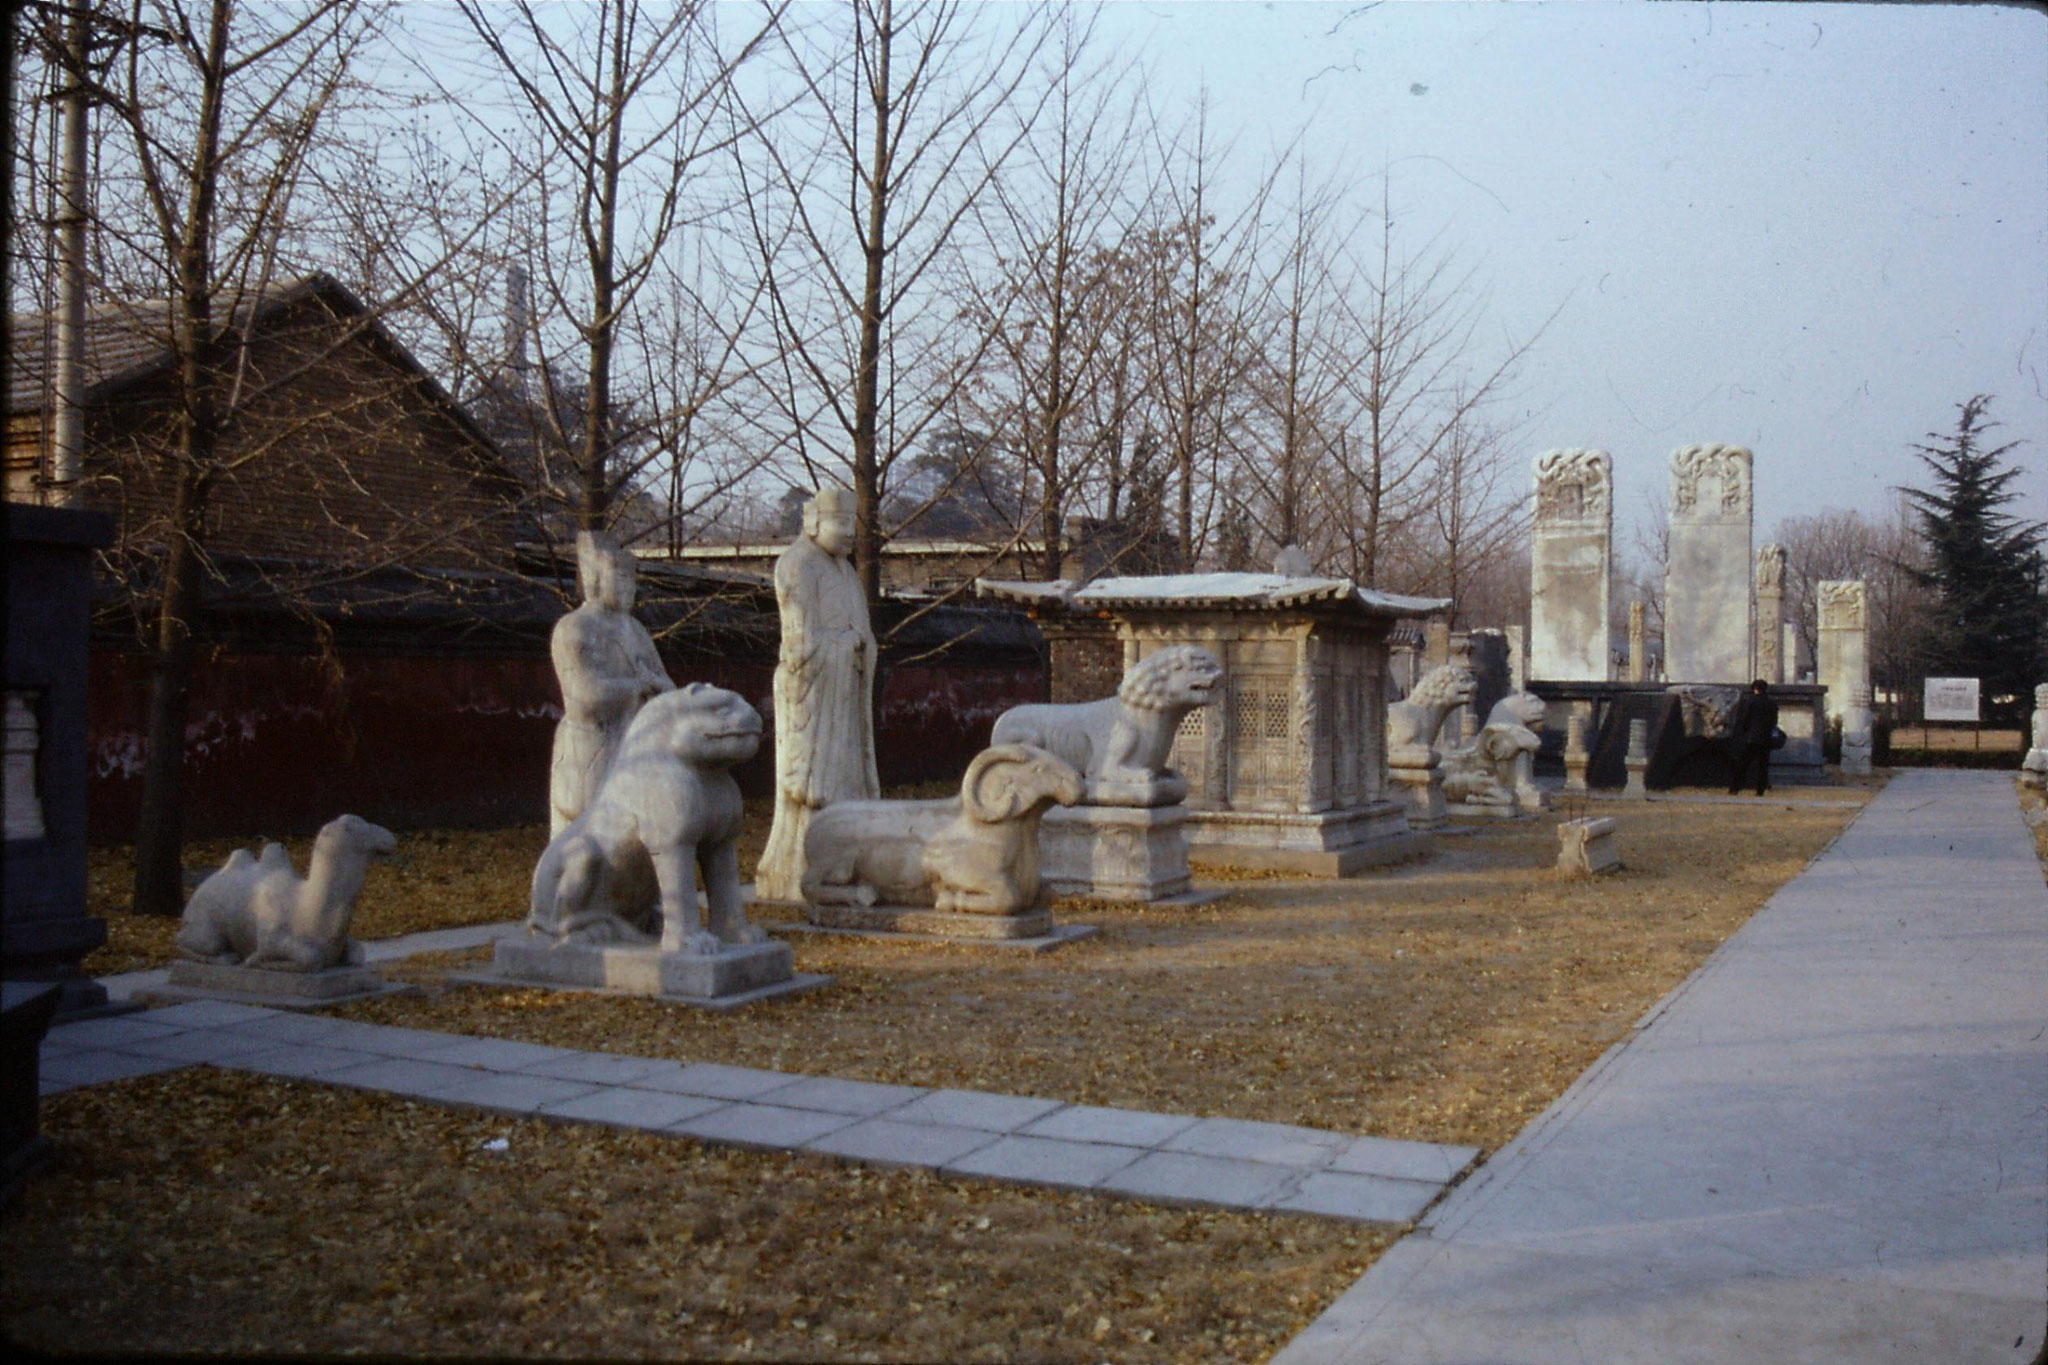 29/11/1988: 10:Wutasi Five Pagoda Temple near zoo